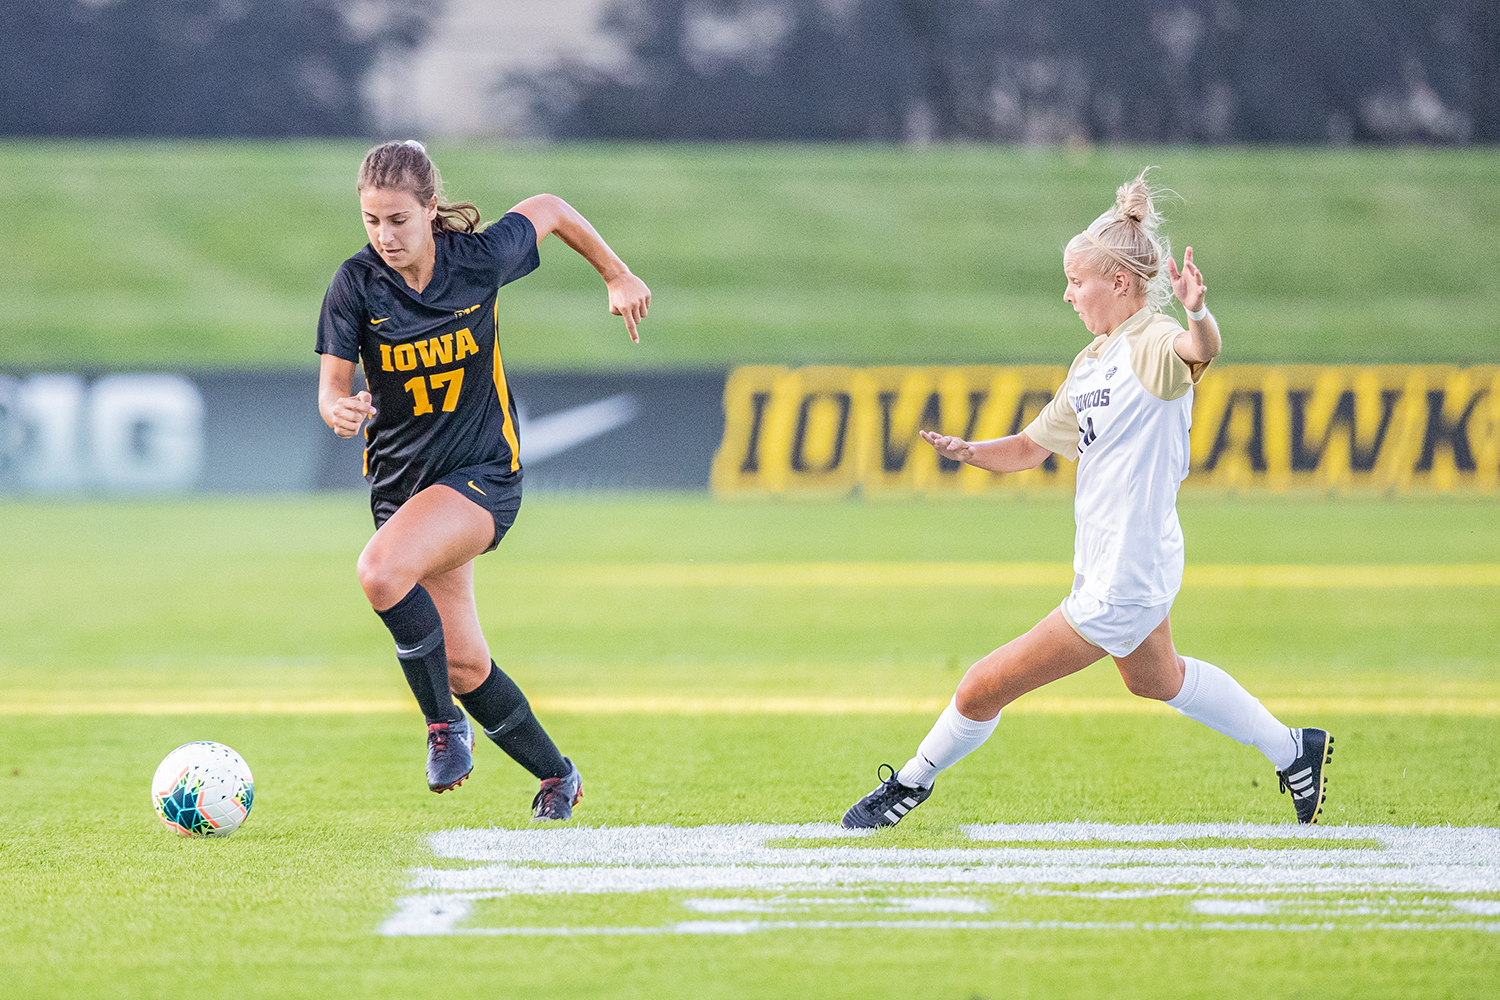 Iowa defender Hannah Drkulec navigates the field during a women's soccer match between Iowa and Western Michigan on Thursday, August 22, 2019. The Hawkeyes defeated the Broncos, 2-0.